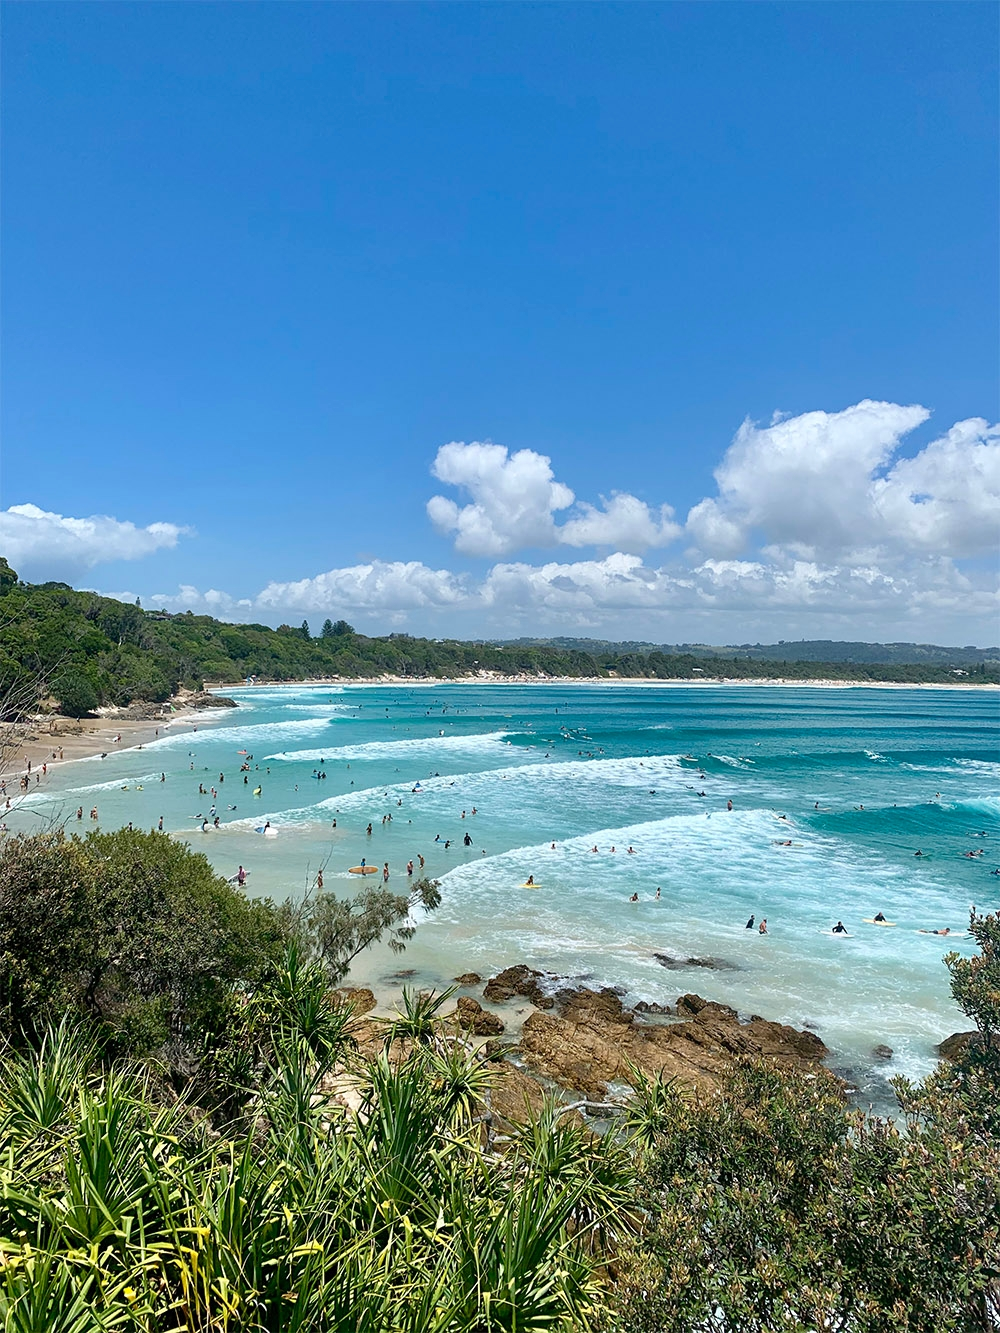 A view of a beach at Byron Bay from the coastal lighthouse walk